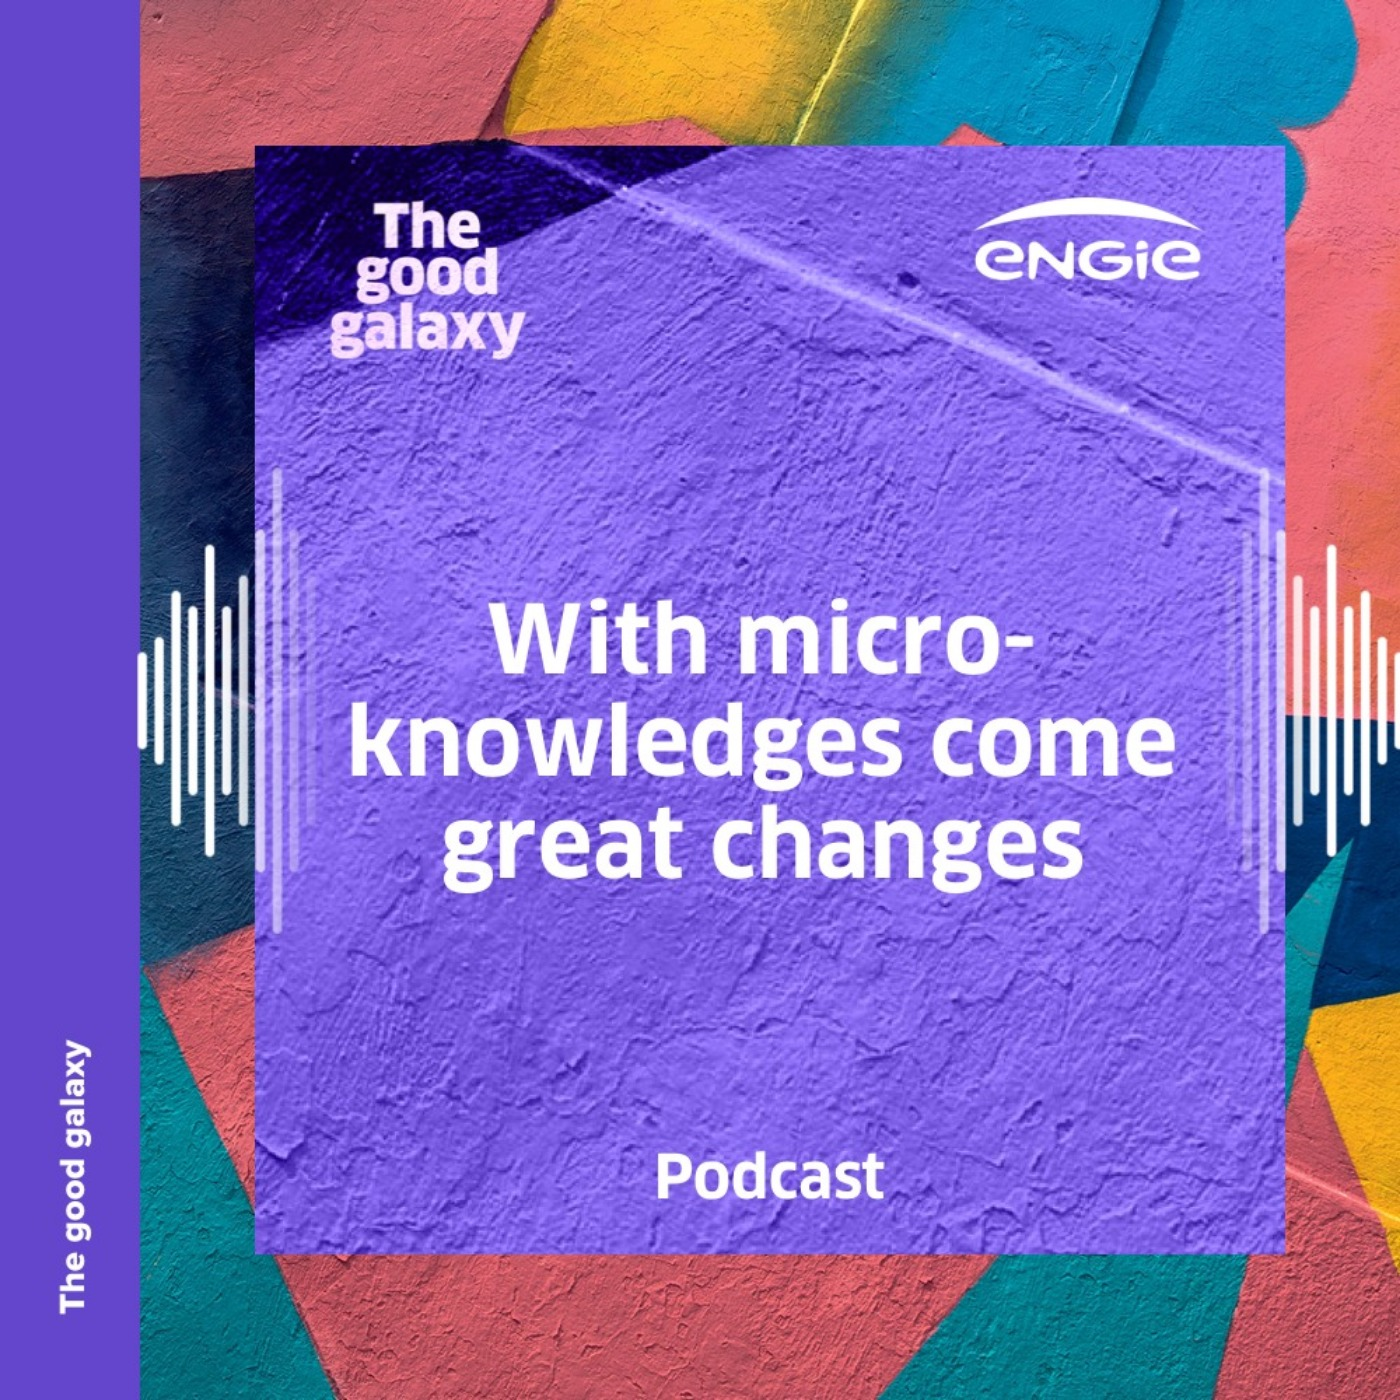 With micro-knowledges come great changes